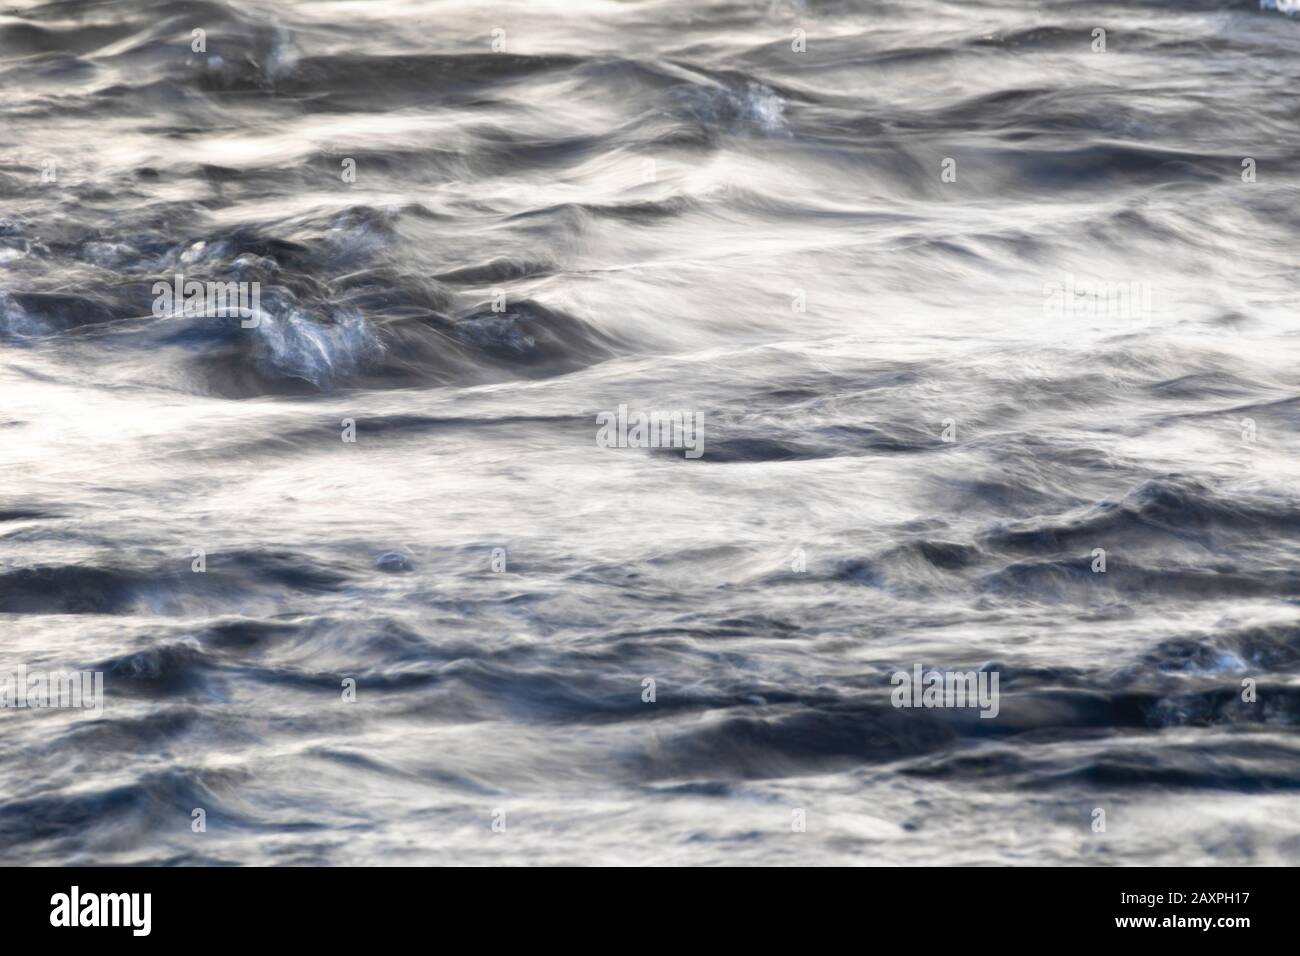 Wave, structure, Finland, brook Stock Photo